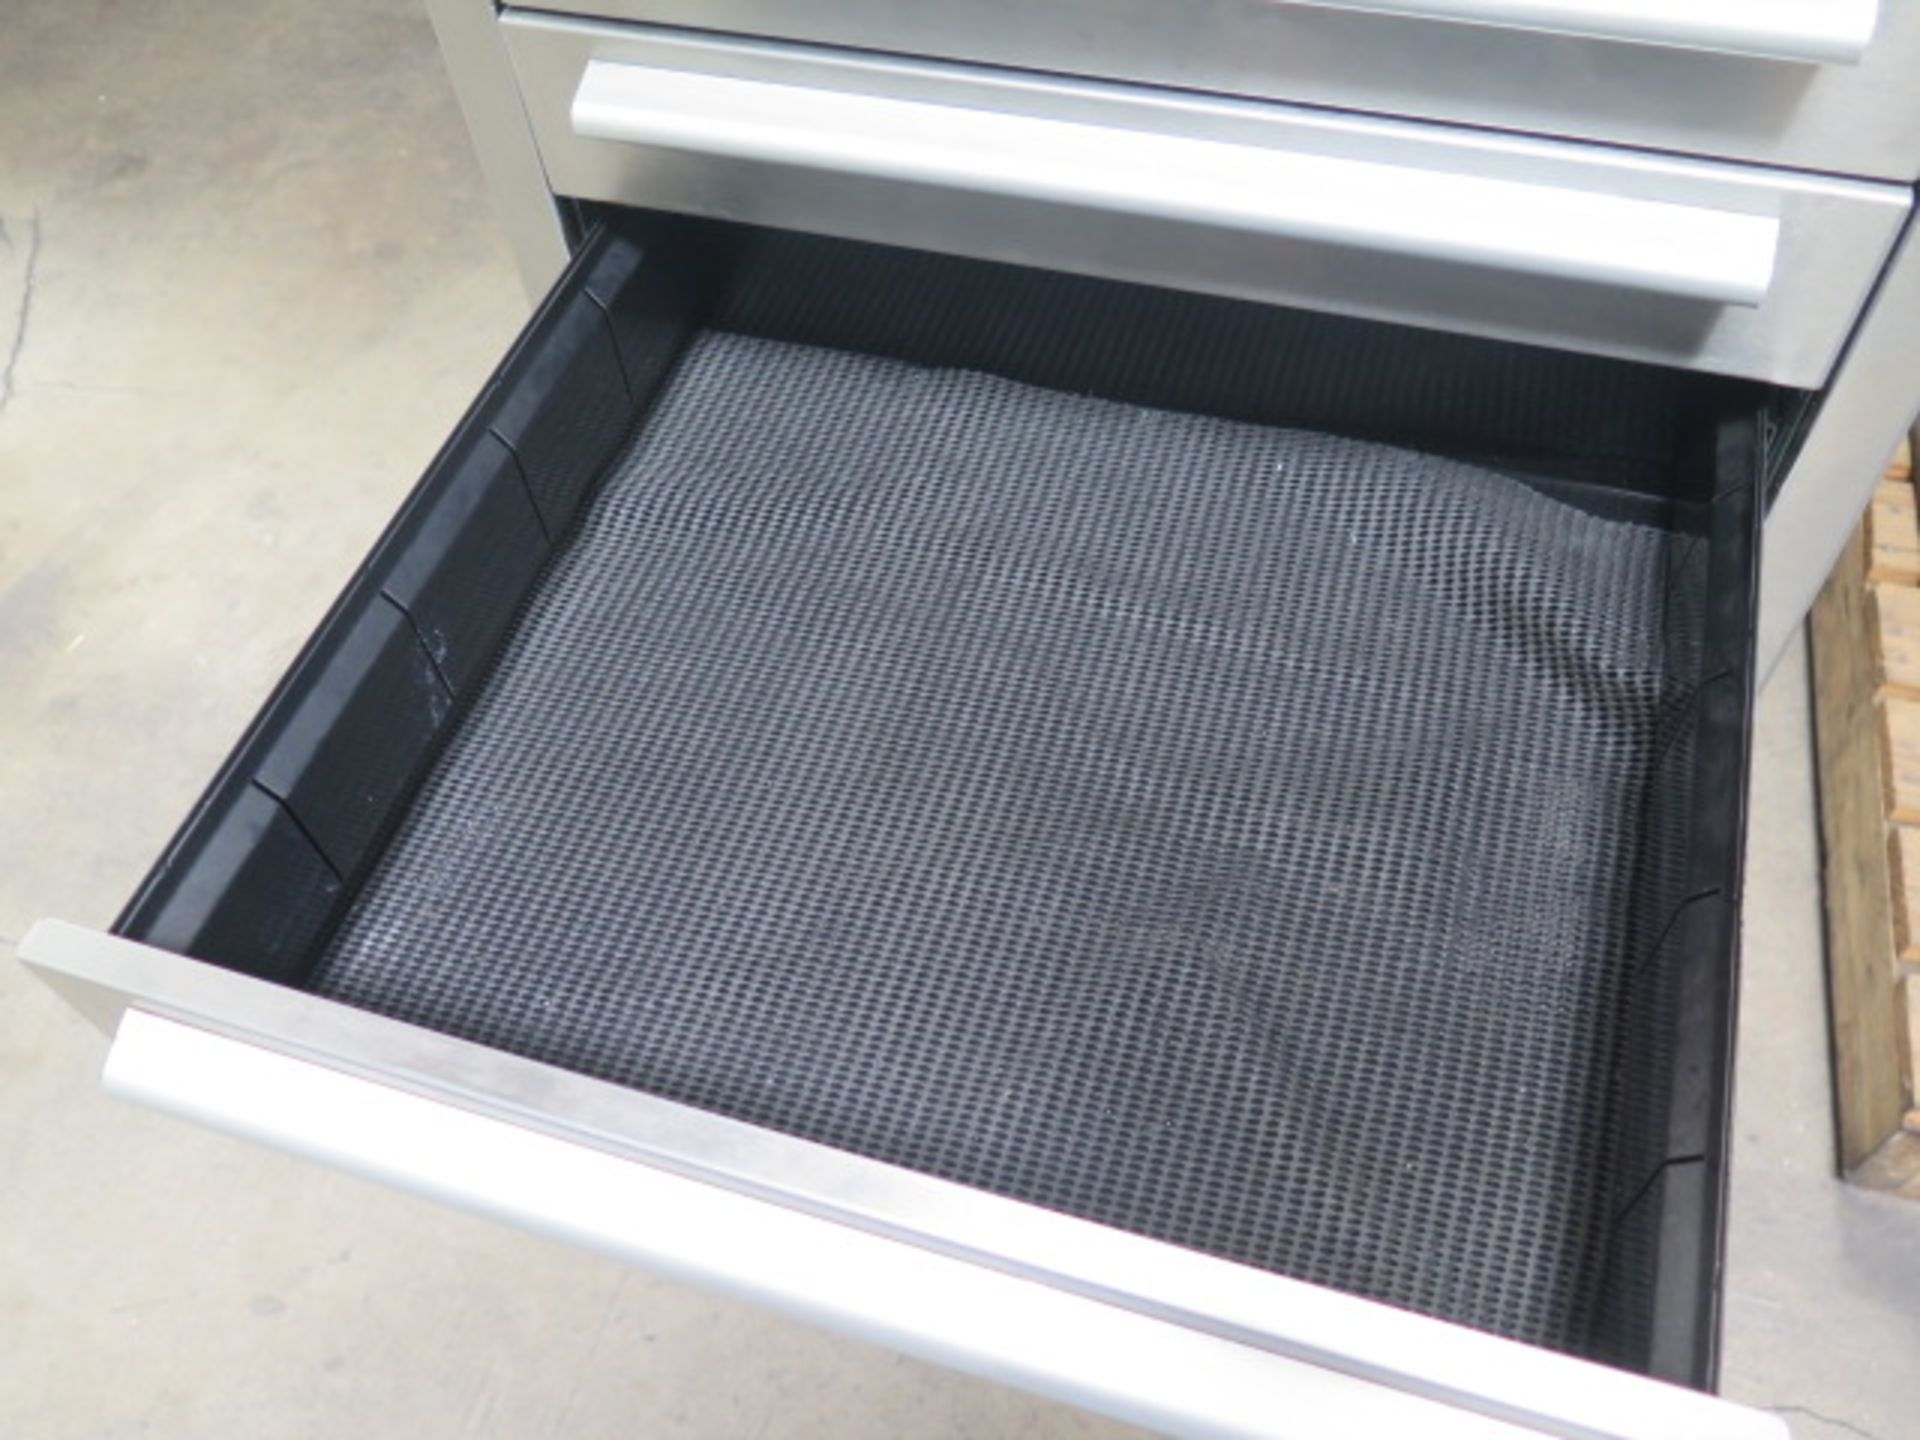 Stainless Steel 5-Drawer Tooling Cabinet (SOLD AS-IS - NO WARRANTY) - Image 5 of 5